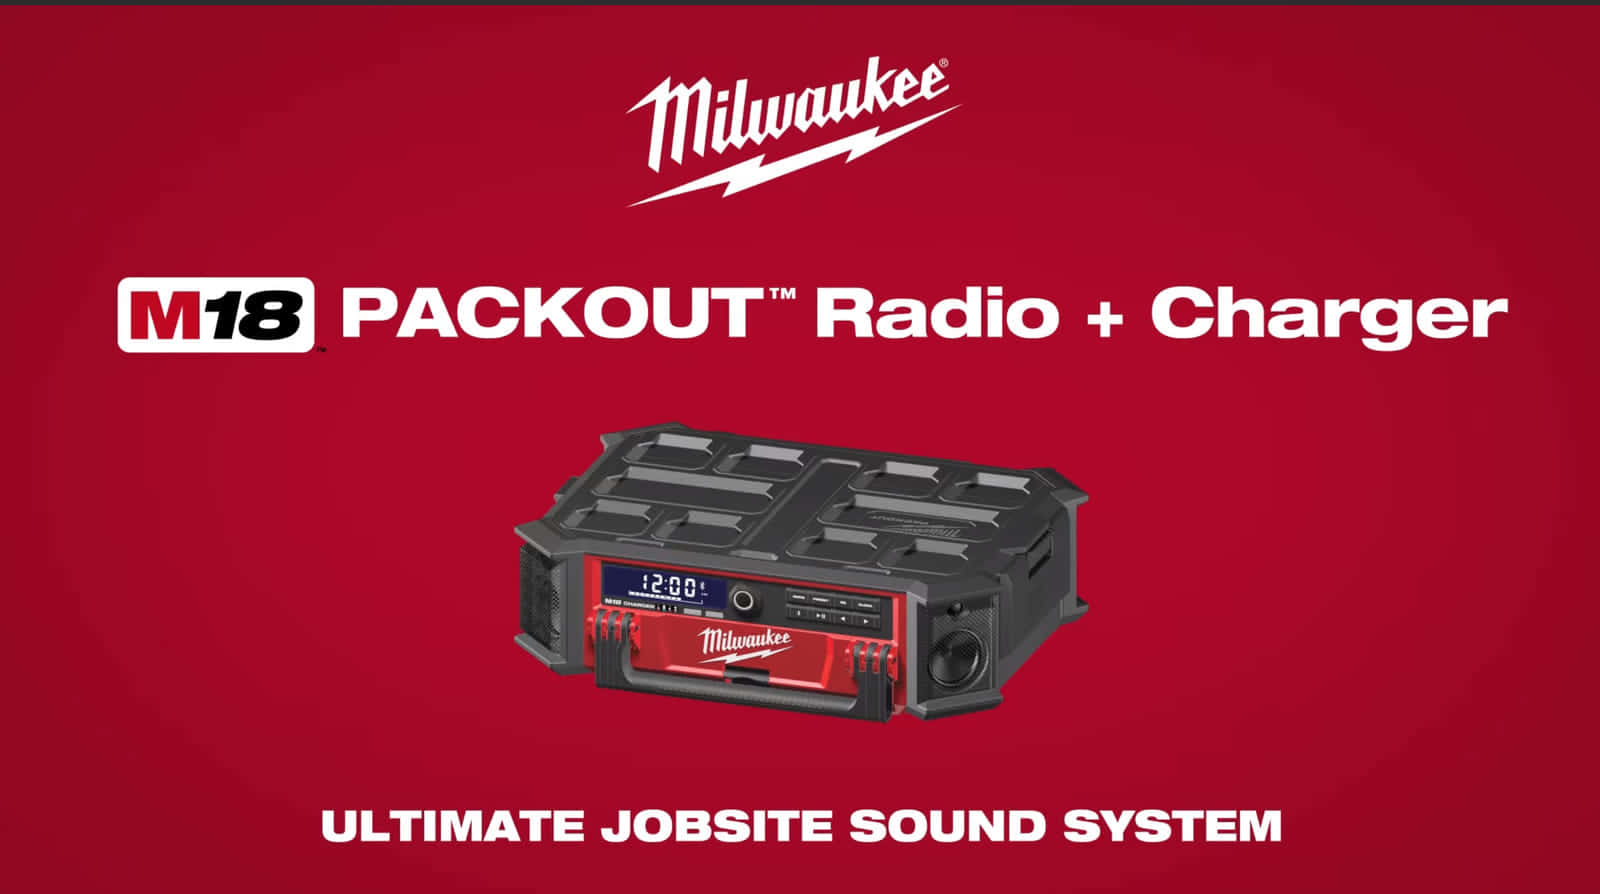 Milwaukee『M18 PACKOUT Radio + Charger』を発表、バッテリーが充電できるPACKOUT対応ラジオ